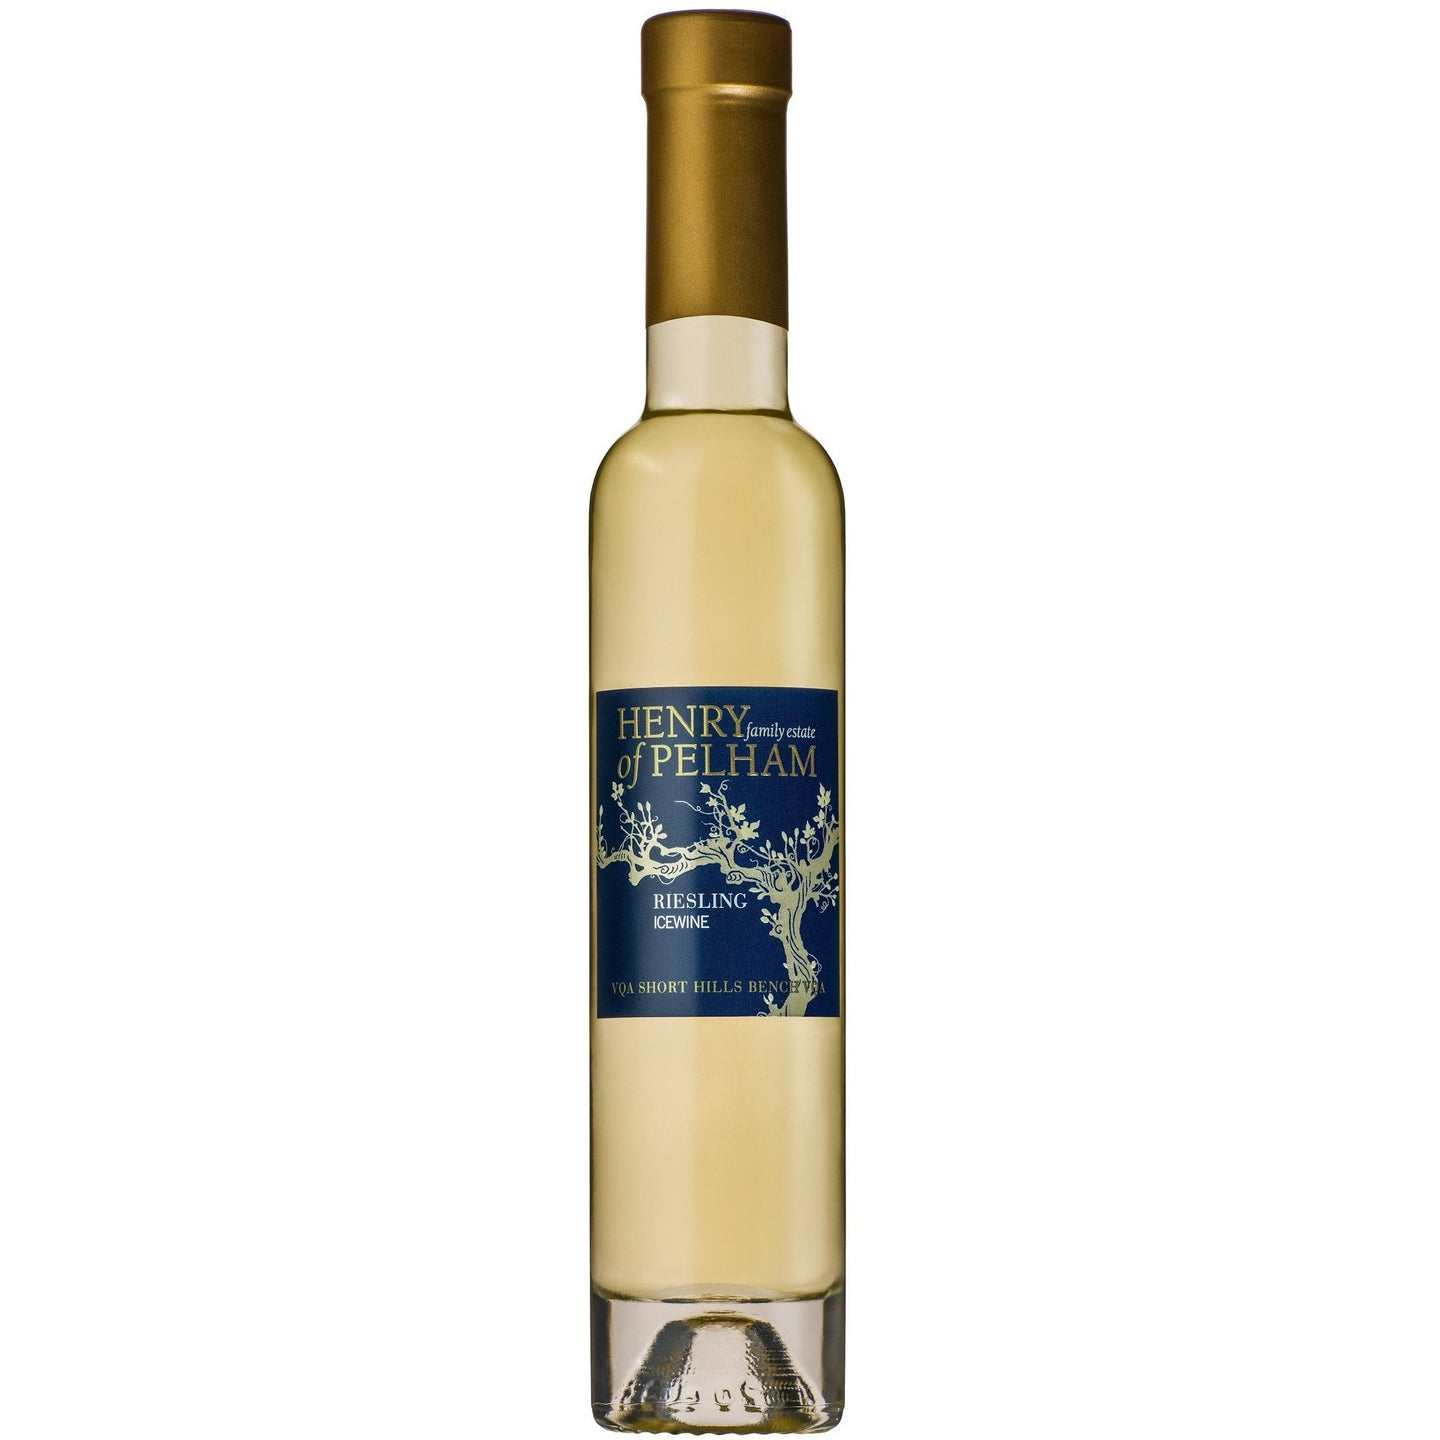 Henry of Pelham Riesling Icewine 2017 (200 mL)